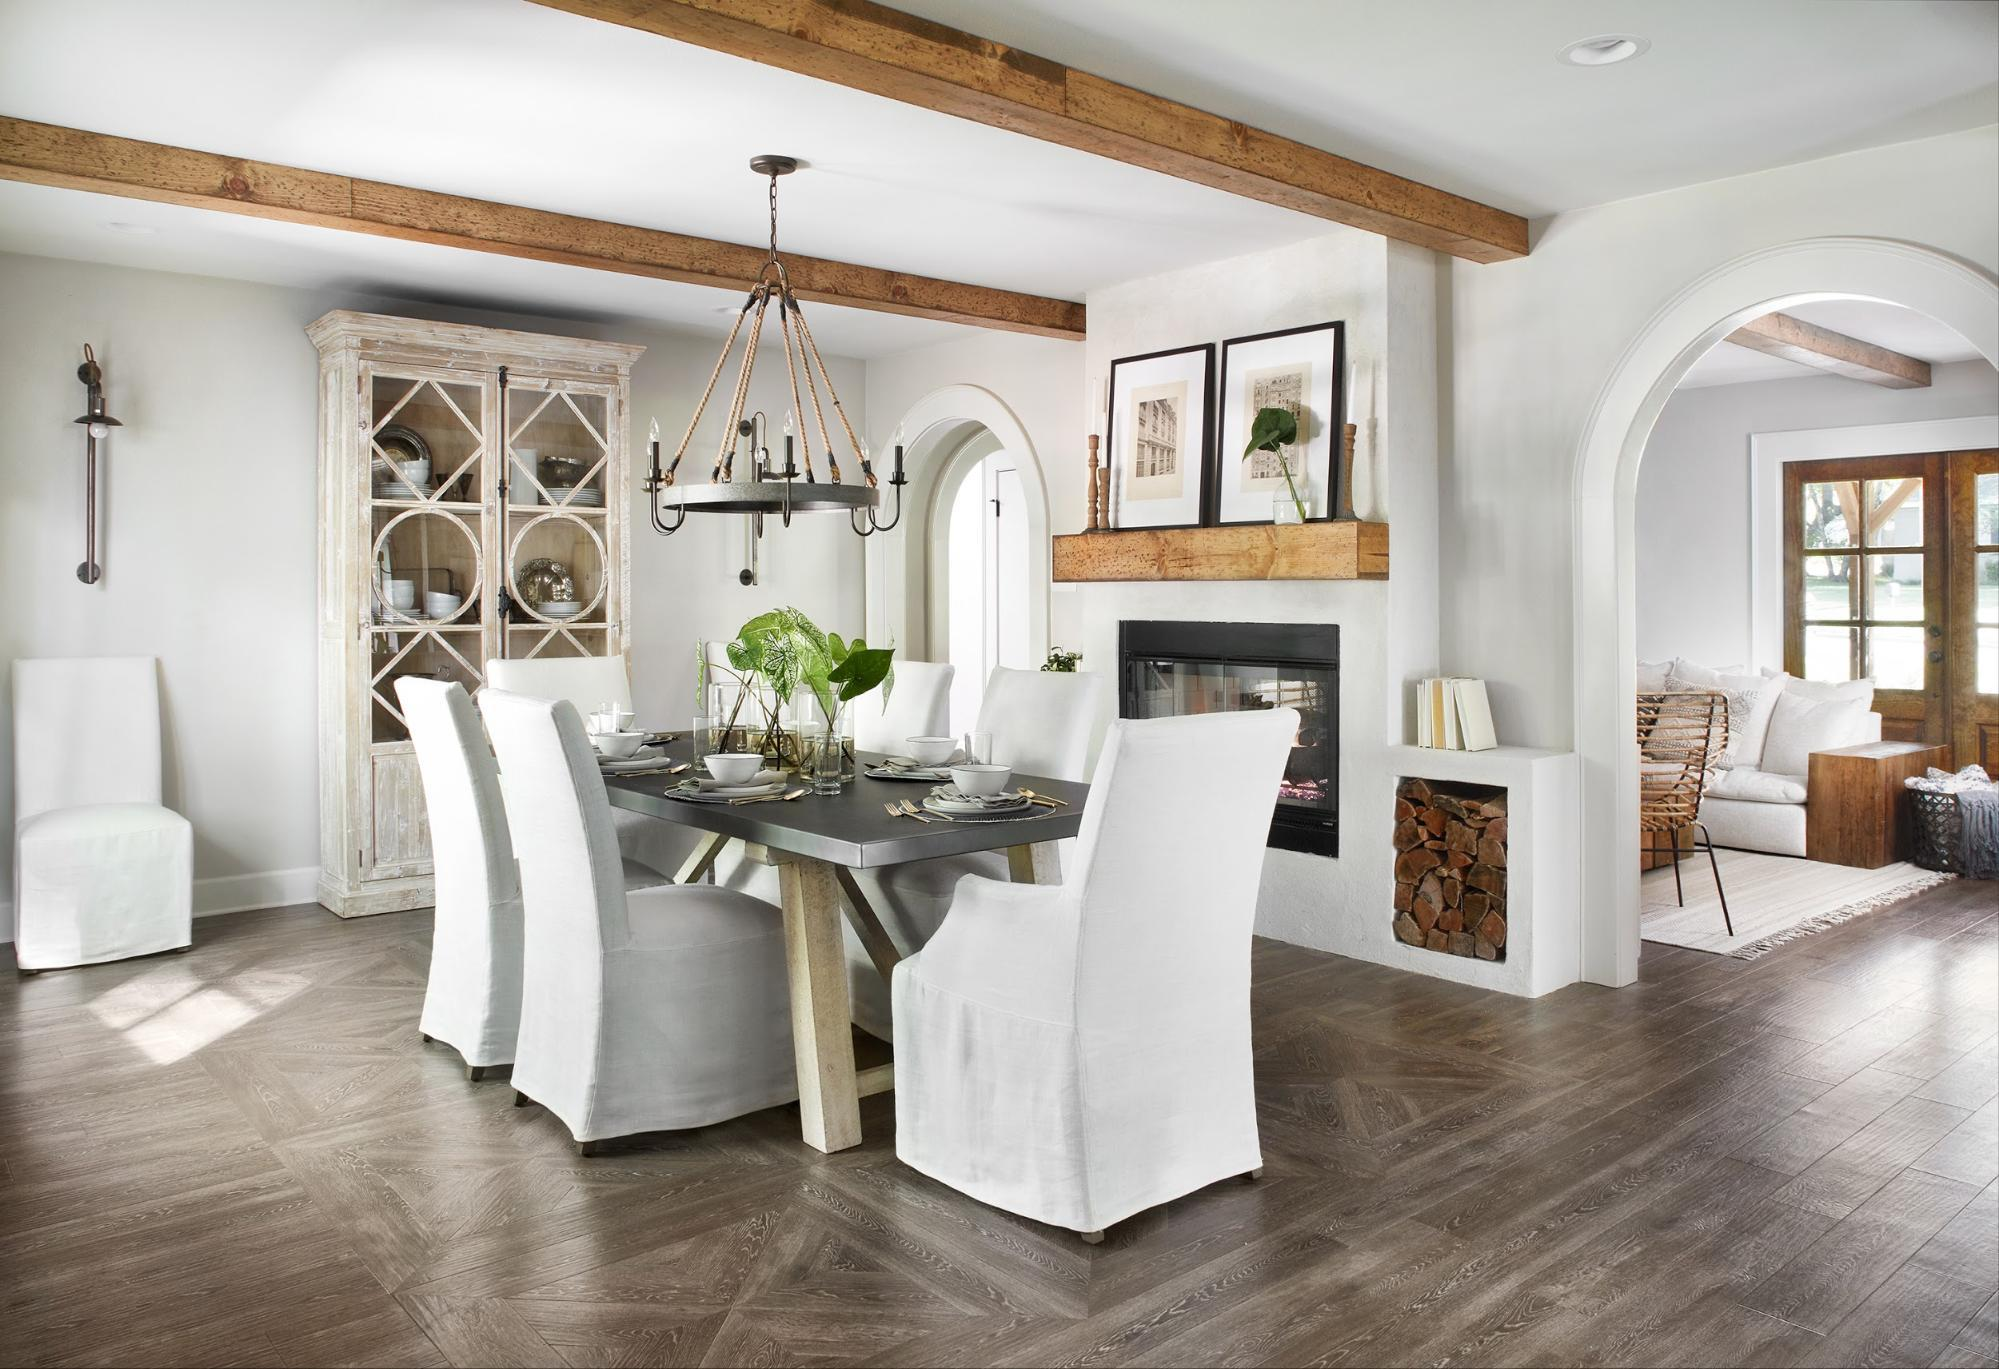 Rustic Coastal design tips from Joanna Gaines